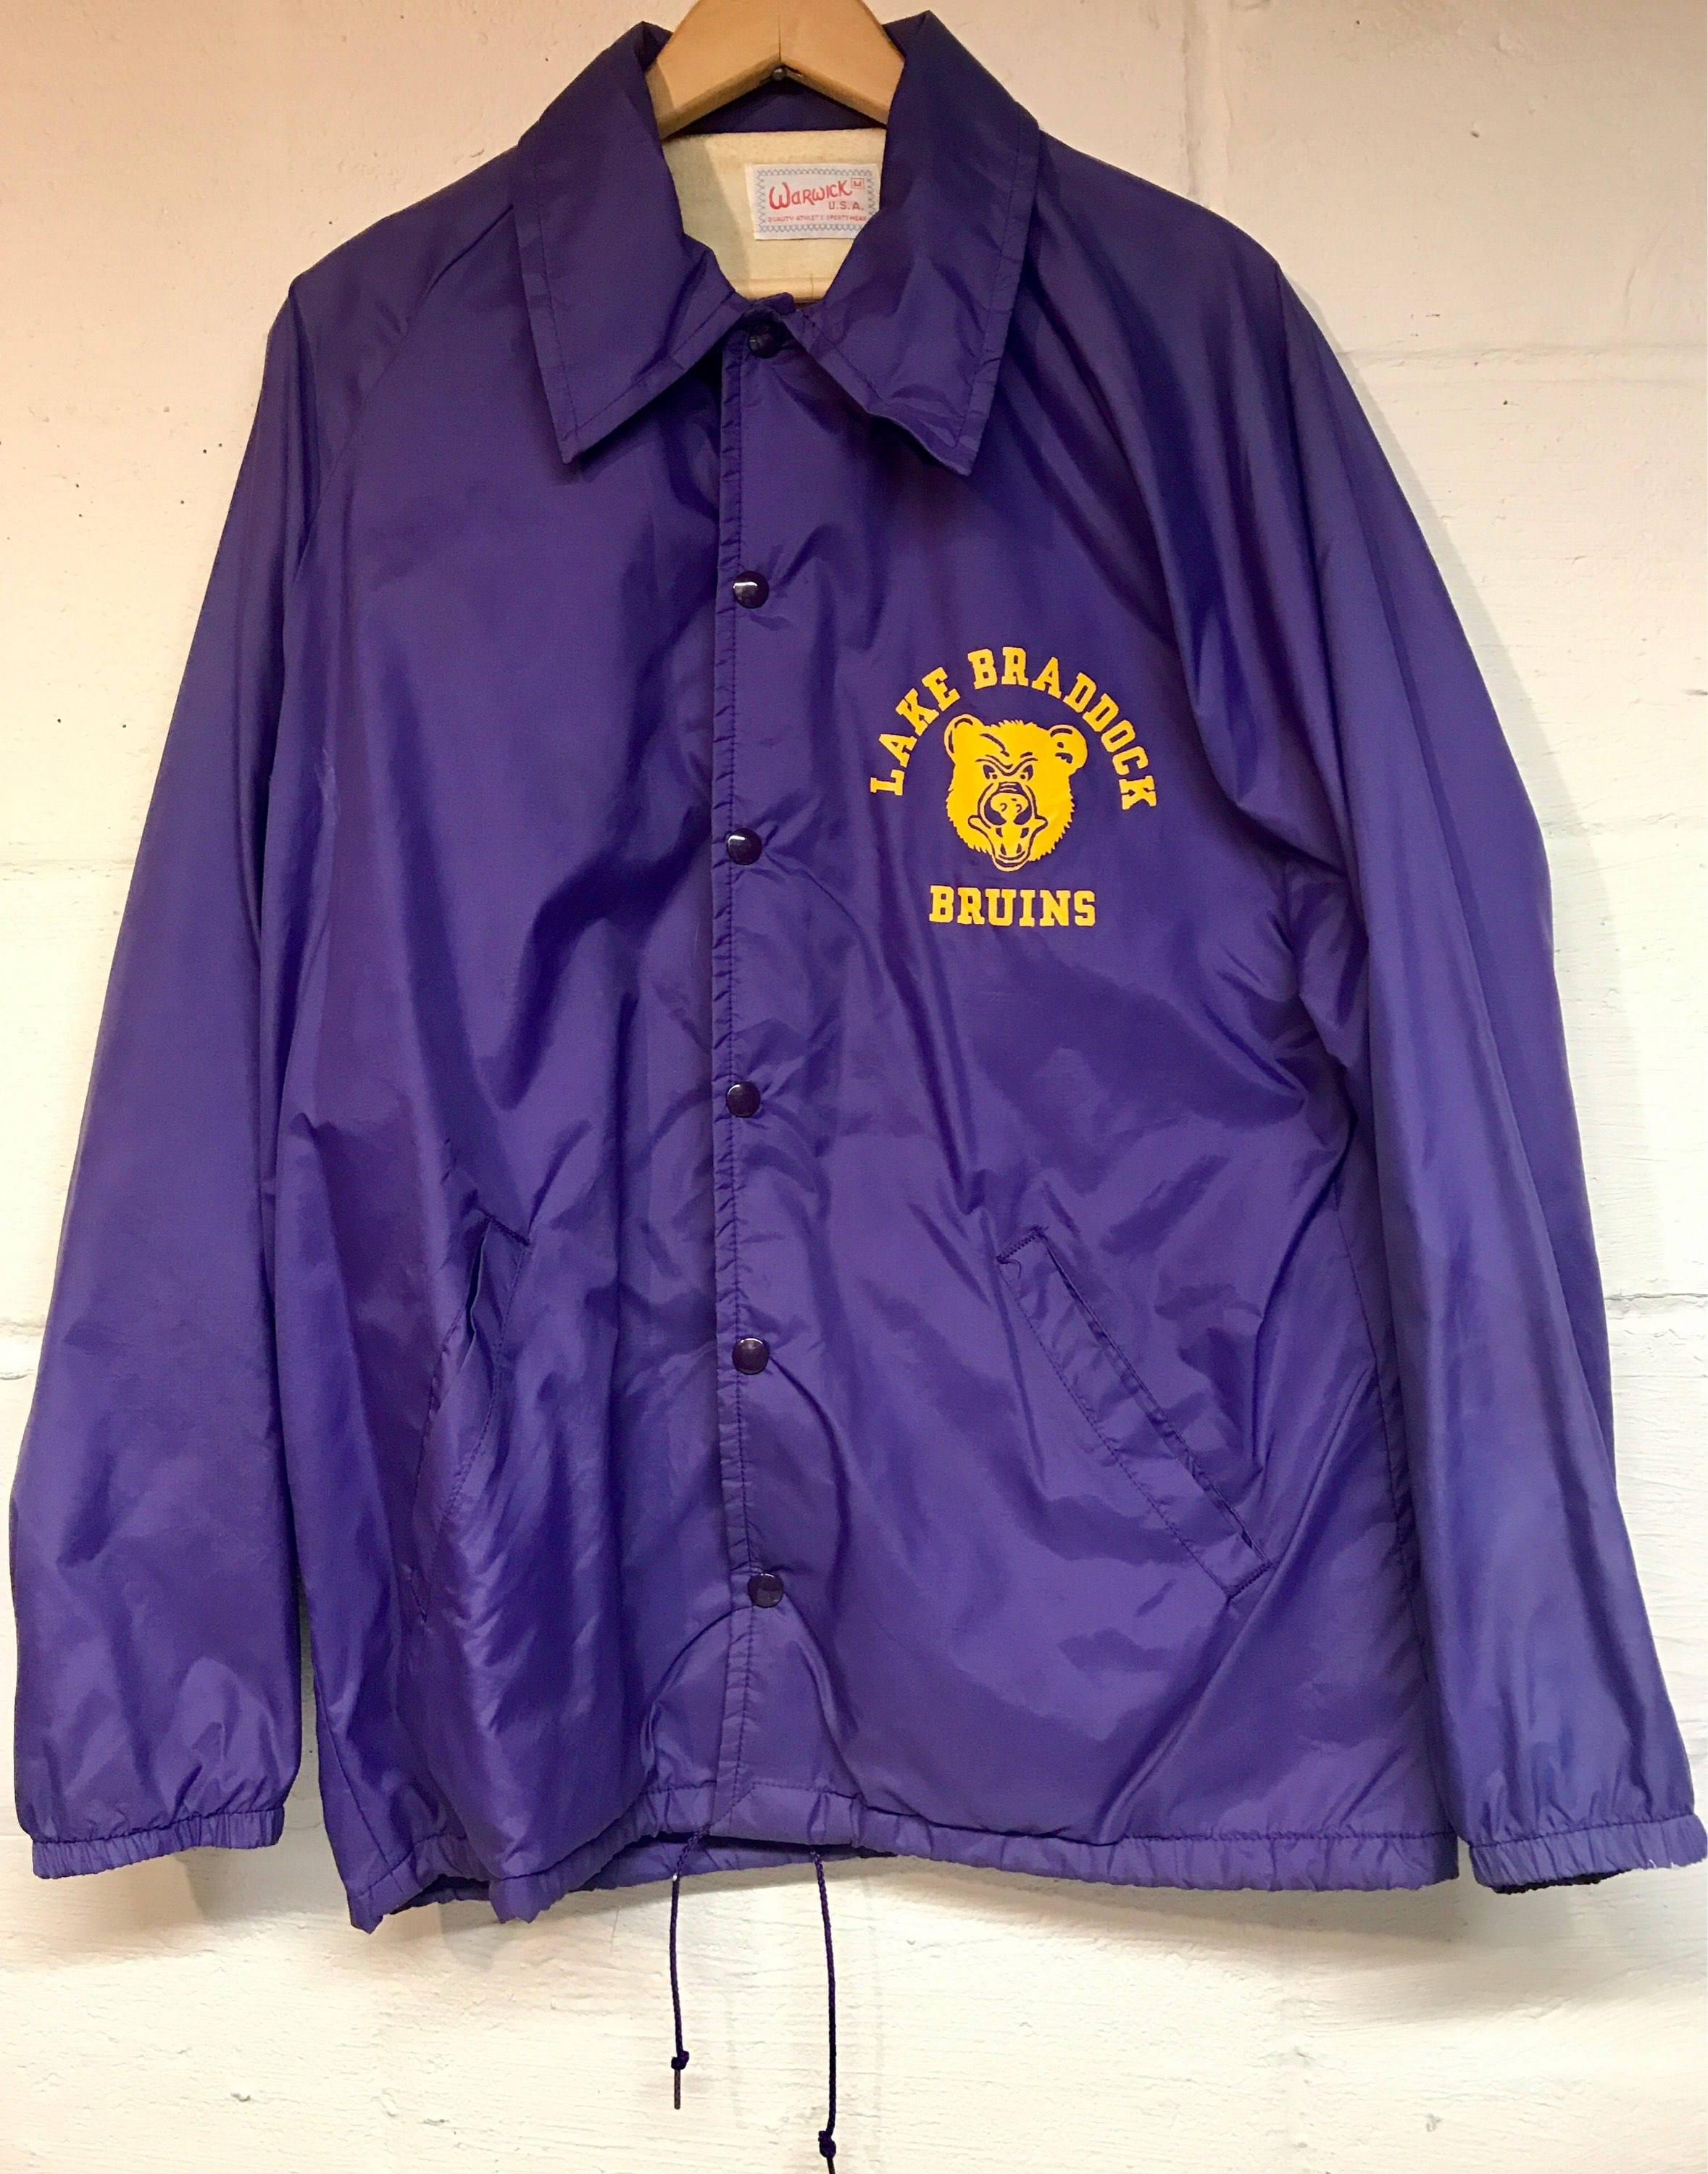 Vintage 1970's Hazelwood Baseball Coach's Jacket Large Snap Button Pittsburgh Pennsylvania Blue Gold High School Champions Dunbrooke RDQBkh9Kh